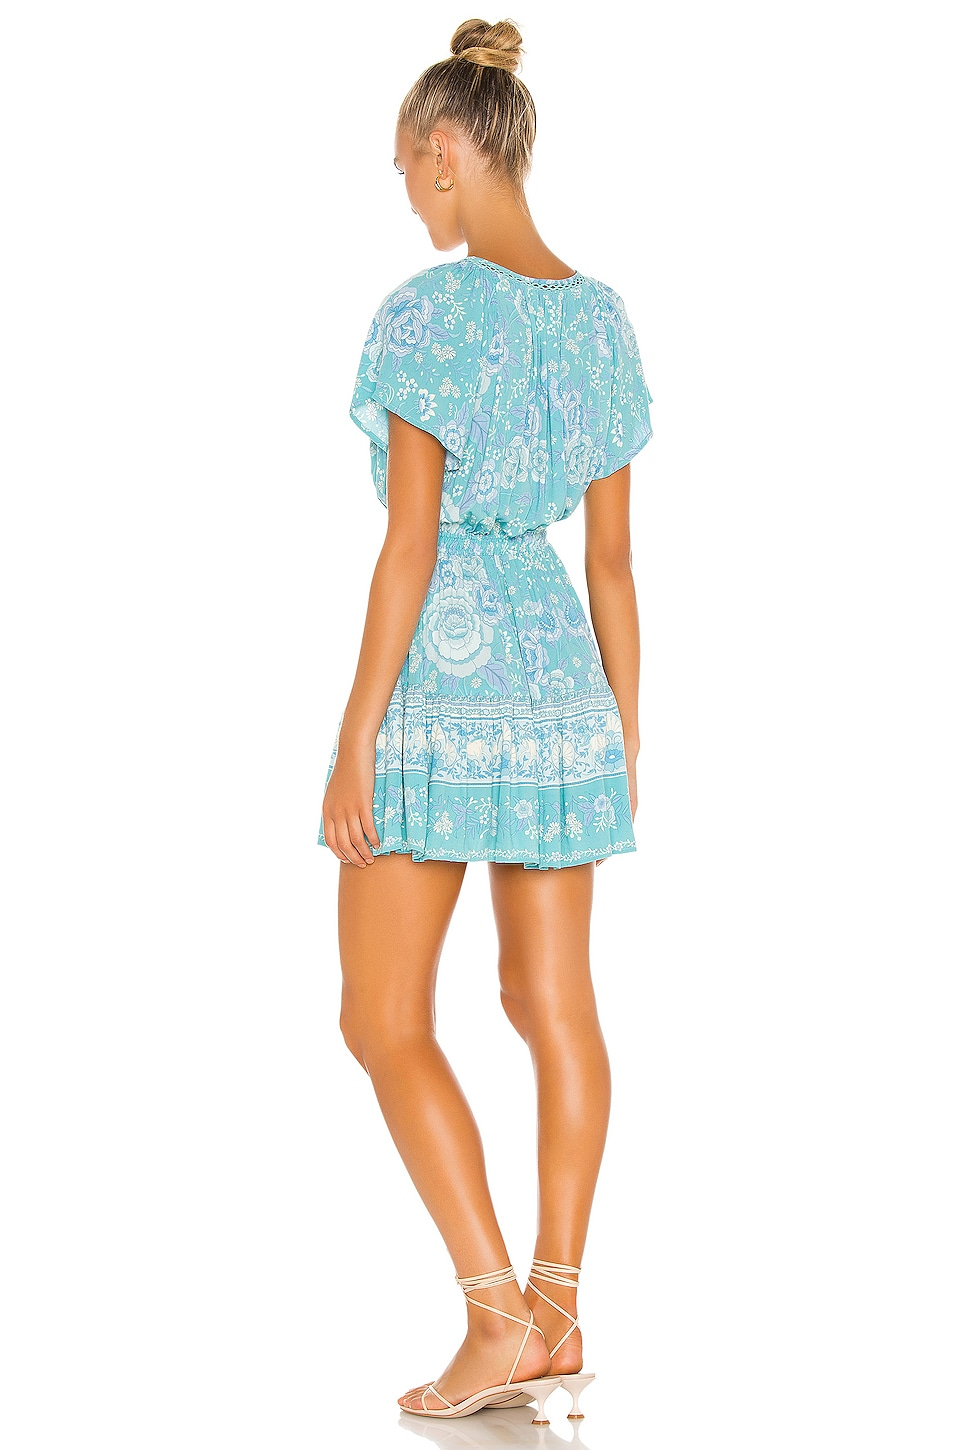 X REVOLVE Mystic Playdress, view 4, click to view large image.